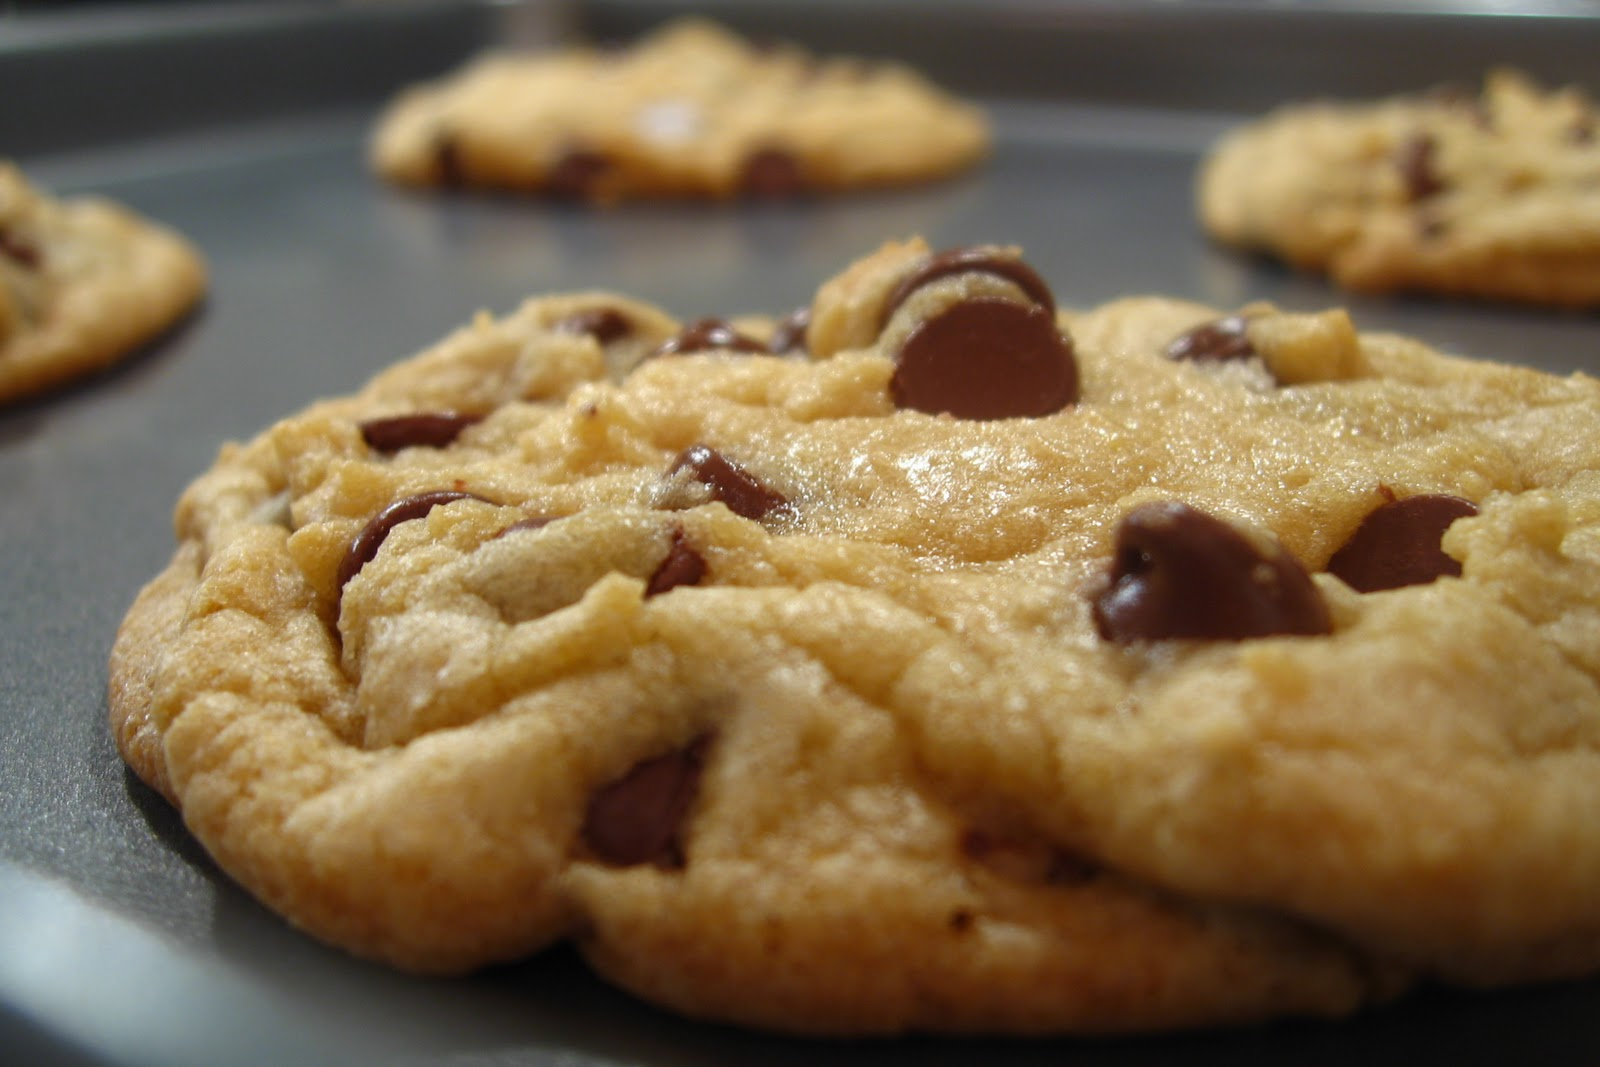 The Best Big Soft Chocolate Chip Cookies Ever